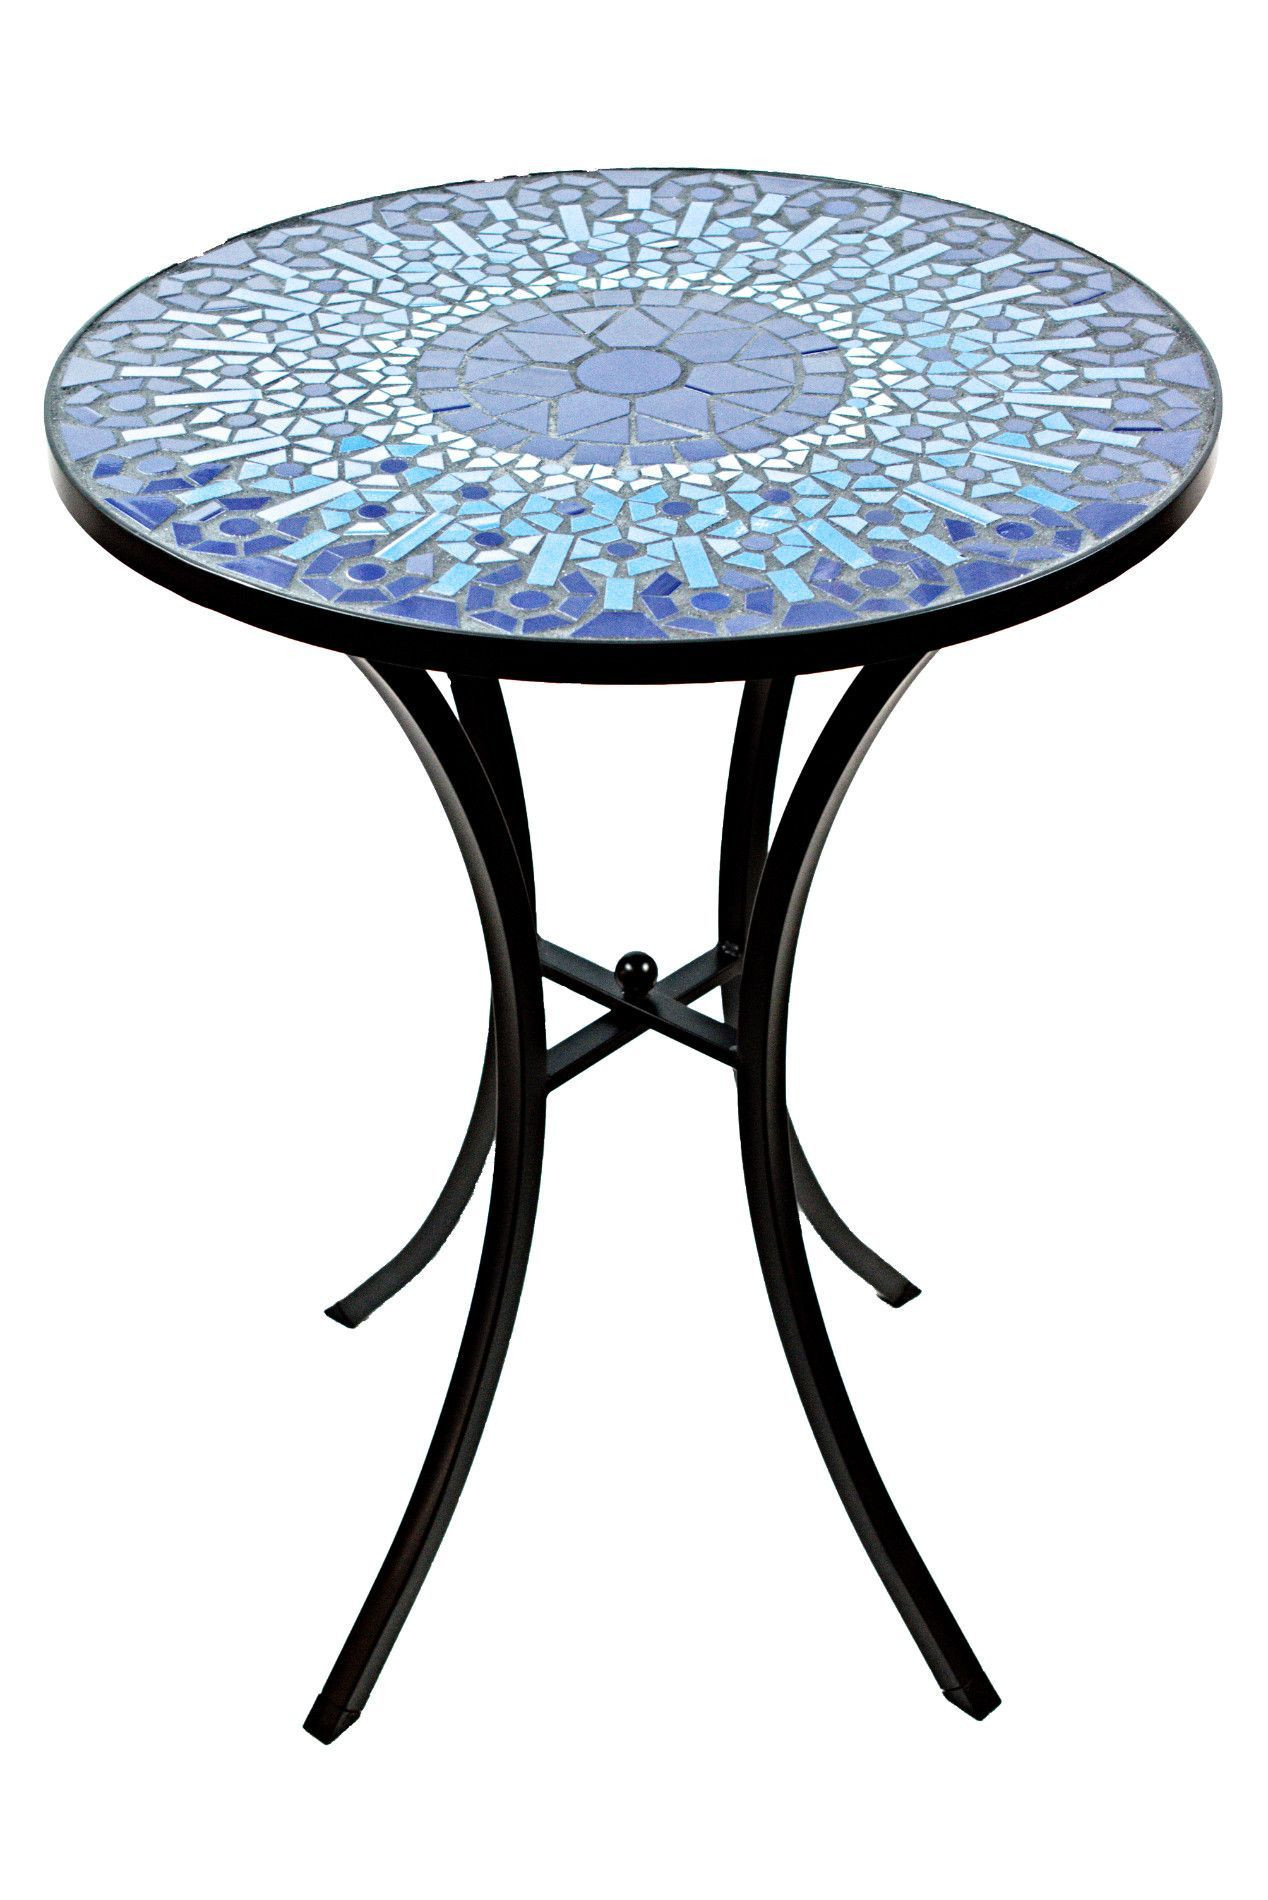 mosaic accent table tile patterns outdoor decor and mosaics drop patio with umbrella coffee ideas inch wide nightstand mirrored side tables for bedroom nite stands furniture